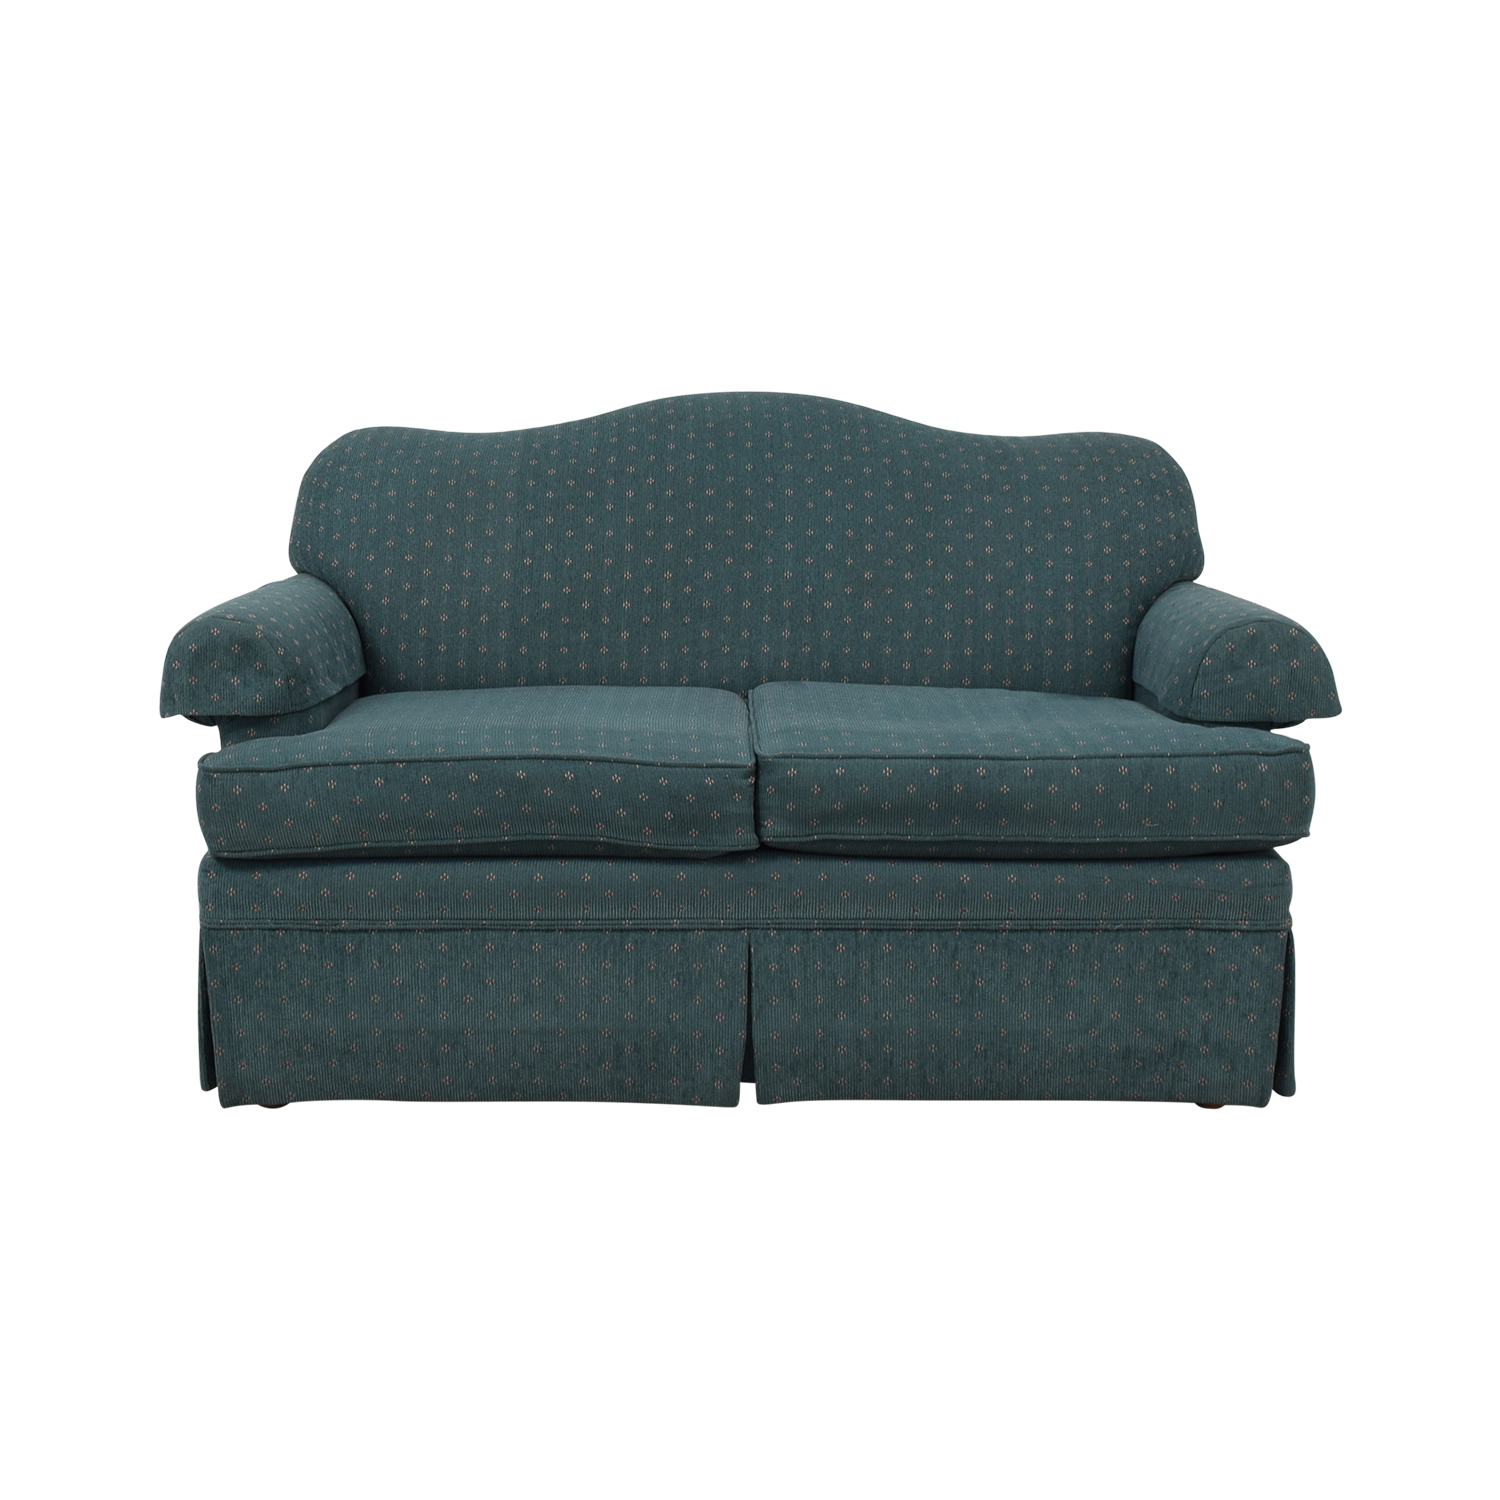 buy La-Z-Boy Patterned Loveseat La-Z-Boy Sofas